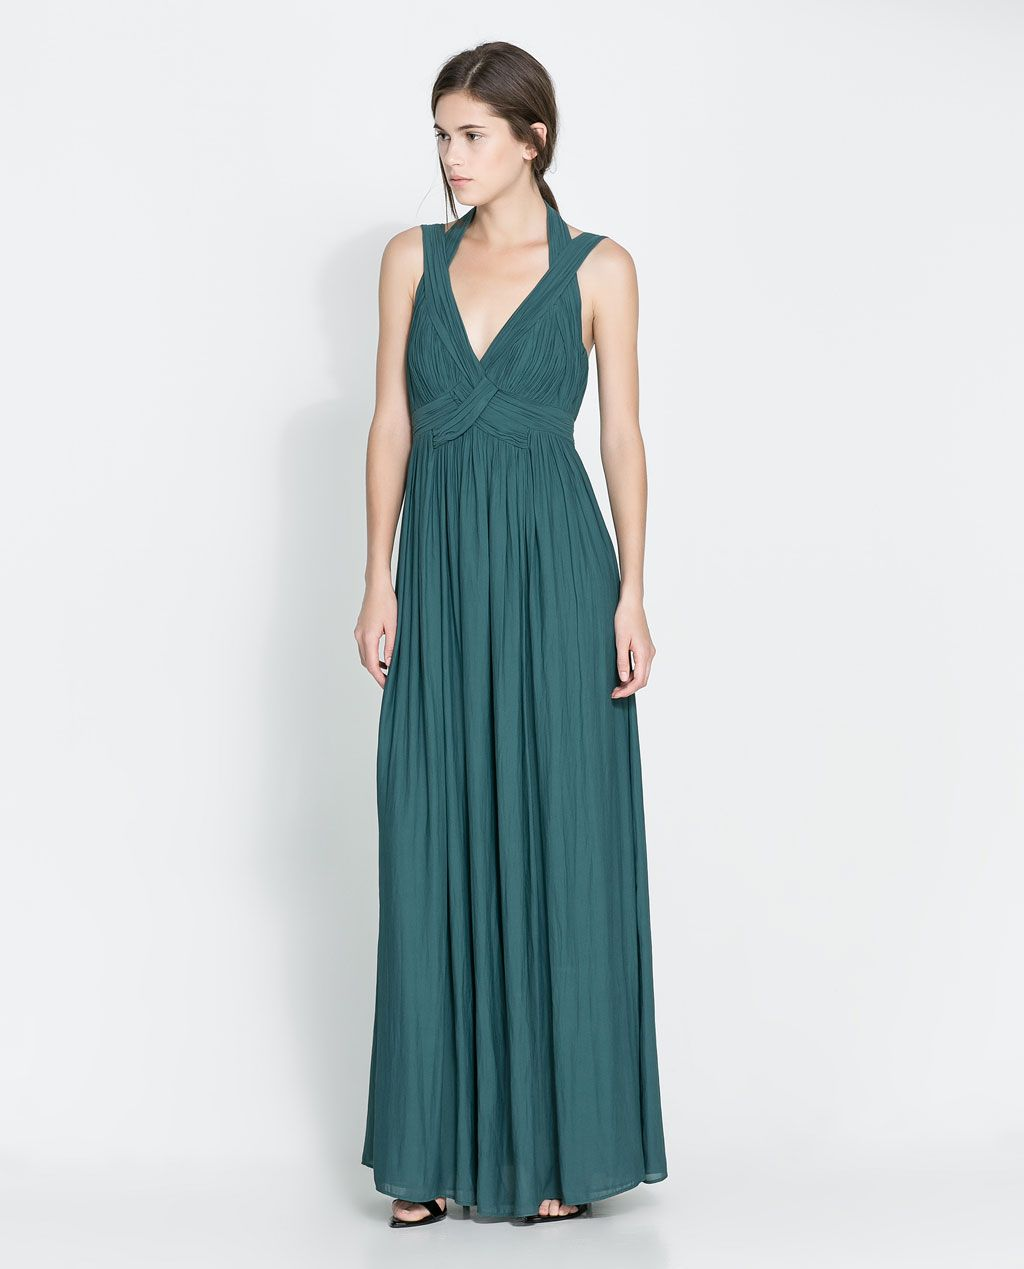 ZARA - WOMAN - LONG GATHERED DRESS | Everyday Womenswear | Pinterest ...